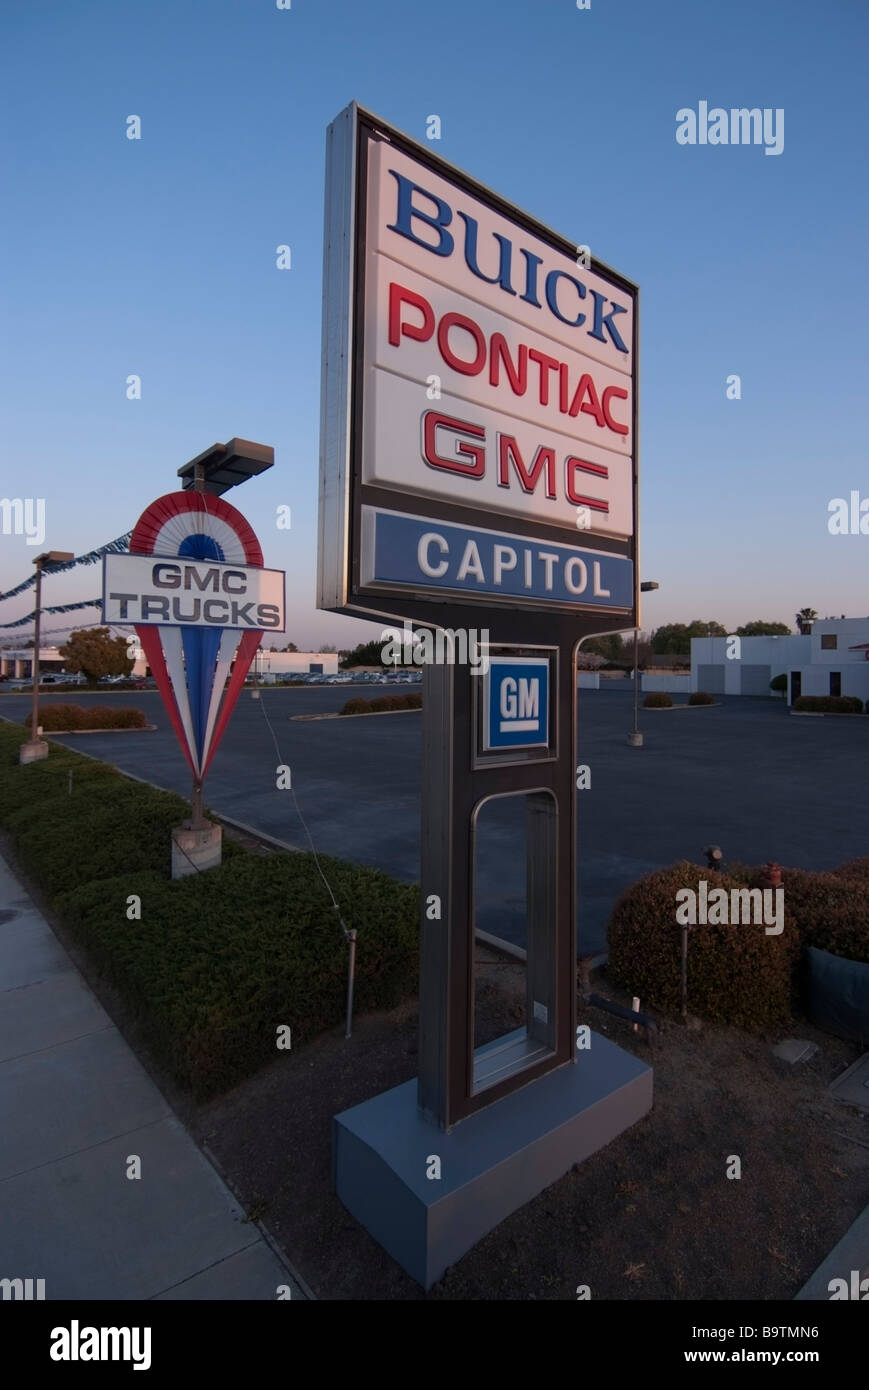 General Motors Dealership Stock Photos & General Motors ...